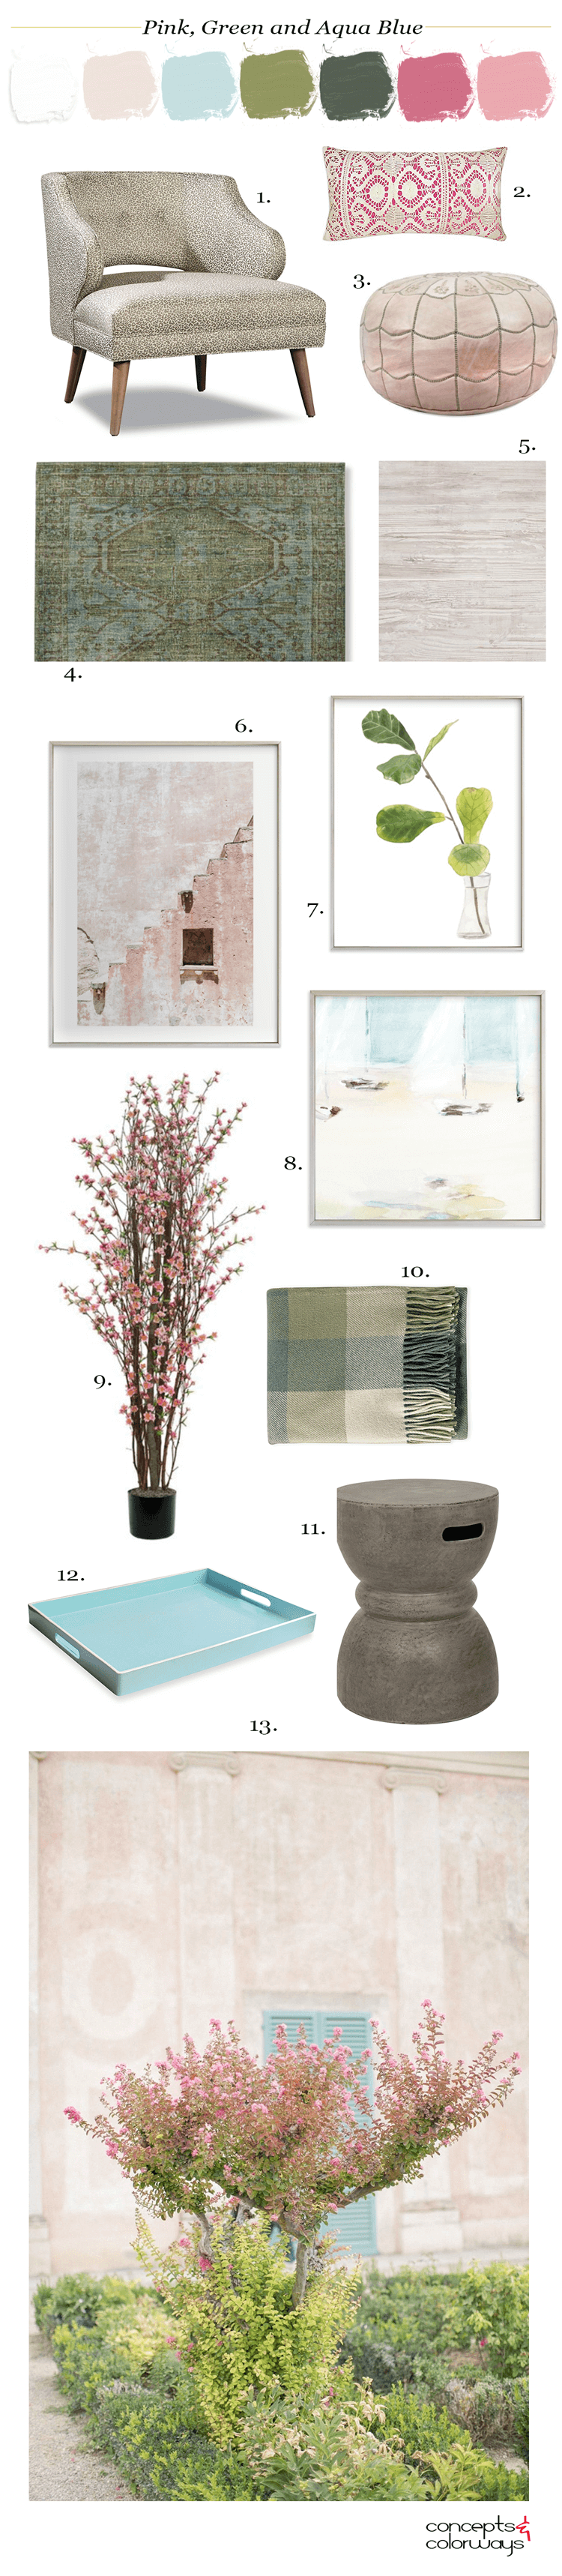 home interior, bubblegum pink, pink and green, blush pink, blush pink walls, aqua blue, turquoise blue, sage green, dark green, pretty color palettes, feminine color palette, color palette, pink blooms, blooming garden, pink pillows, blush pink pouf, turquoise and green rug, pink blossom tree